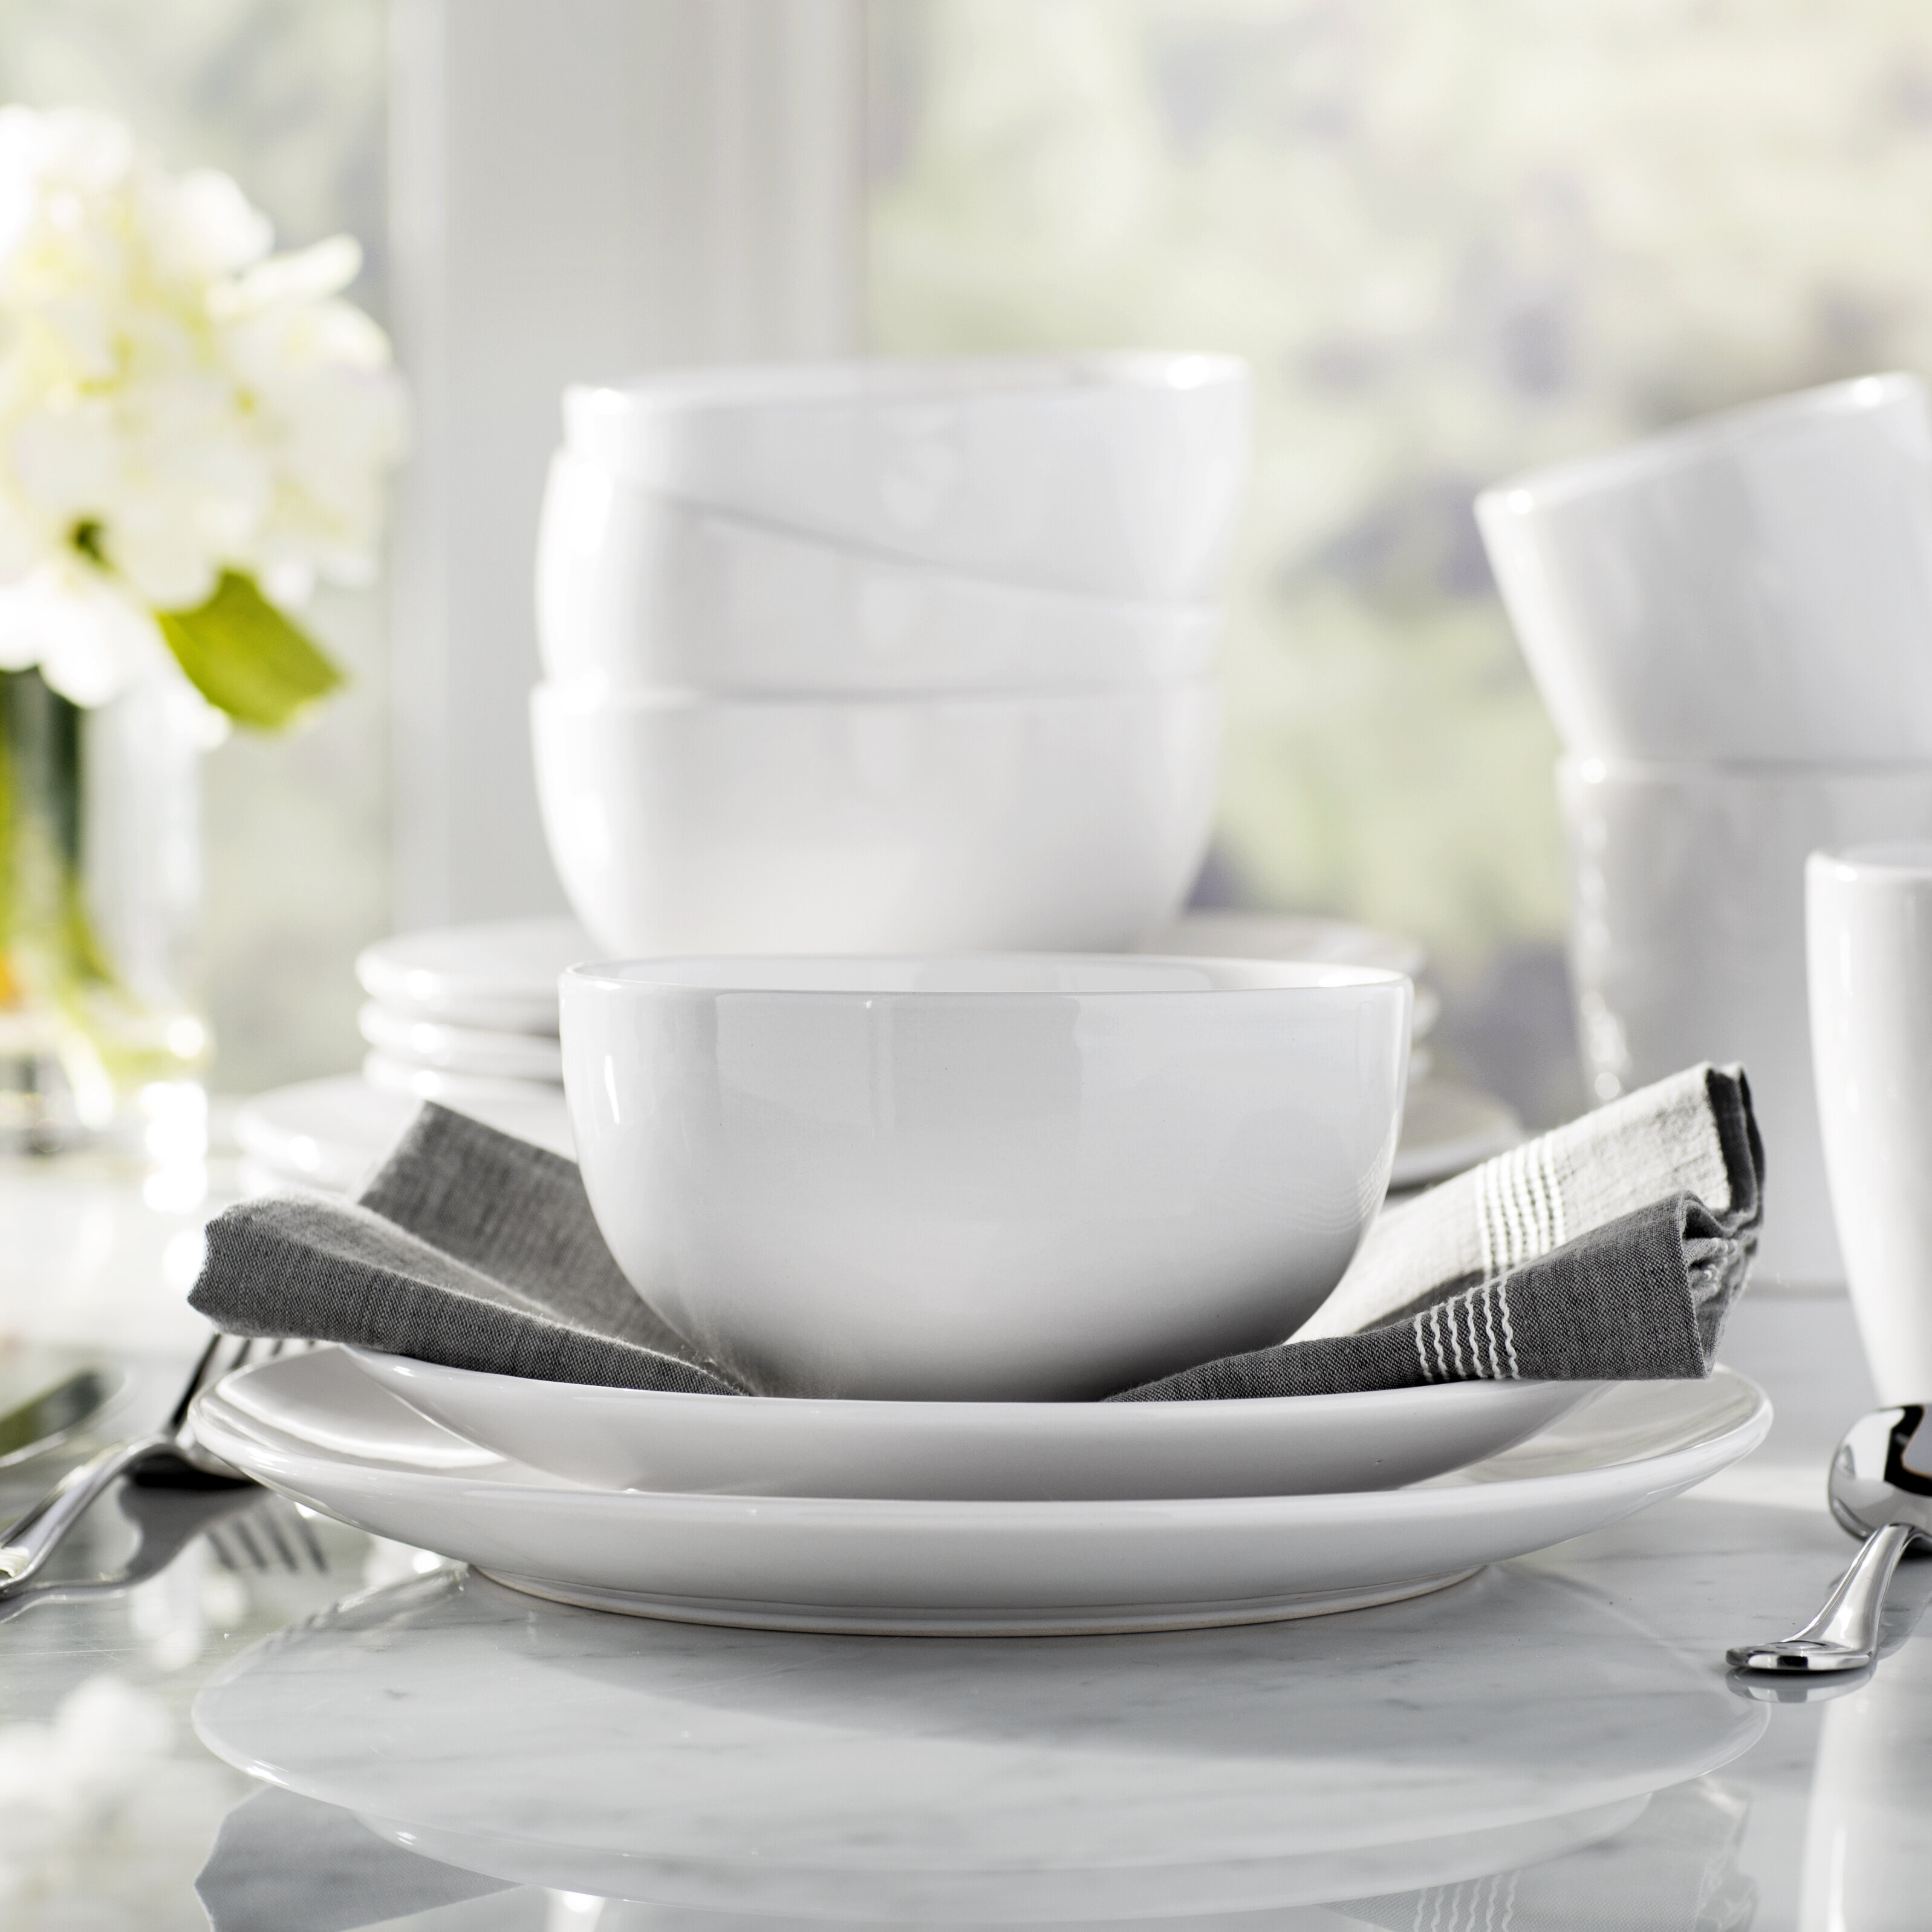 Wayfair Basics™ Wayfair Basics 12 Piece Stoneware Dinnerware Set Service for 4 u0026 Reviews | Wayfair & Wayfair Basics™ Wayfair Basics 12 Piece Stoneware Dinnerware Set ...